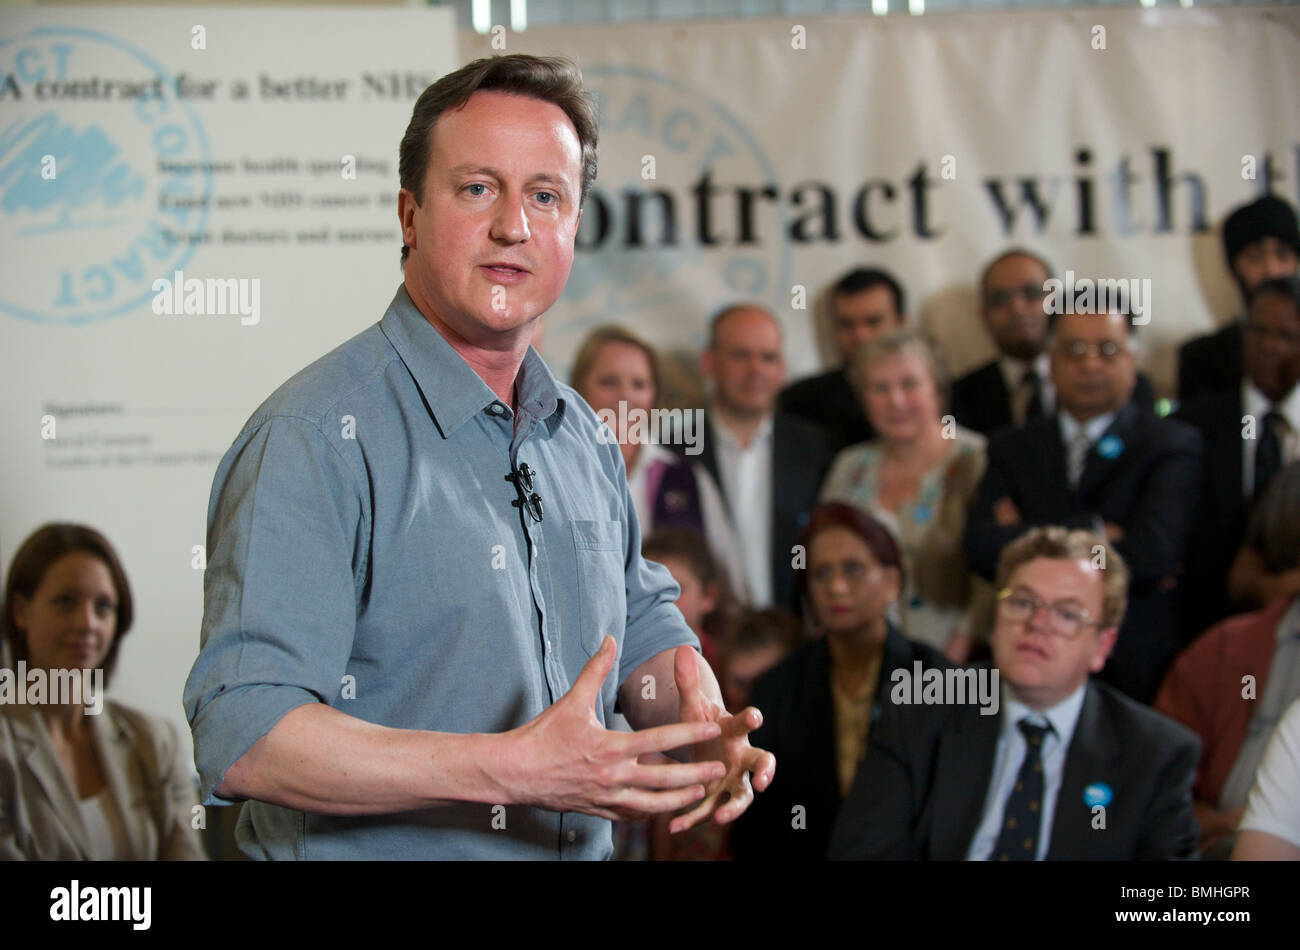 Britain's opposition Conservative Party leader, David Cameron, visits Rush Green Medical centre in Dagenham, Essex, UK. Stock Photo